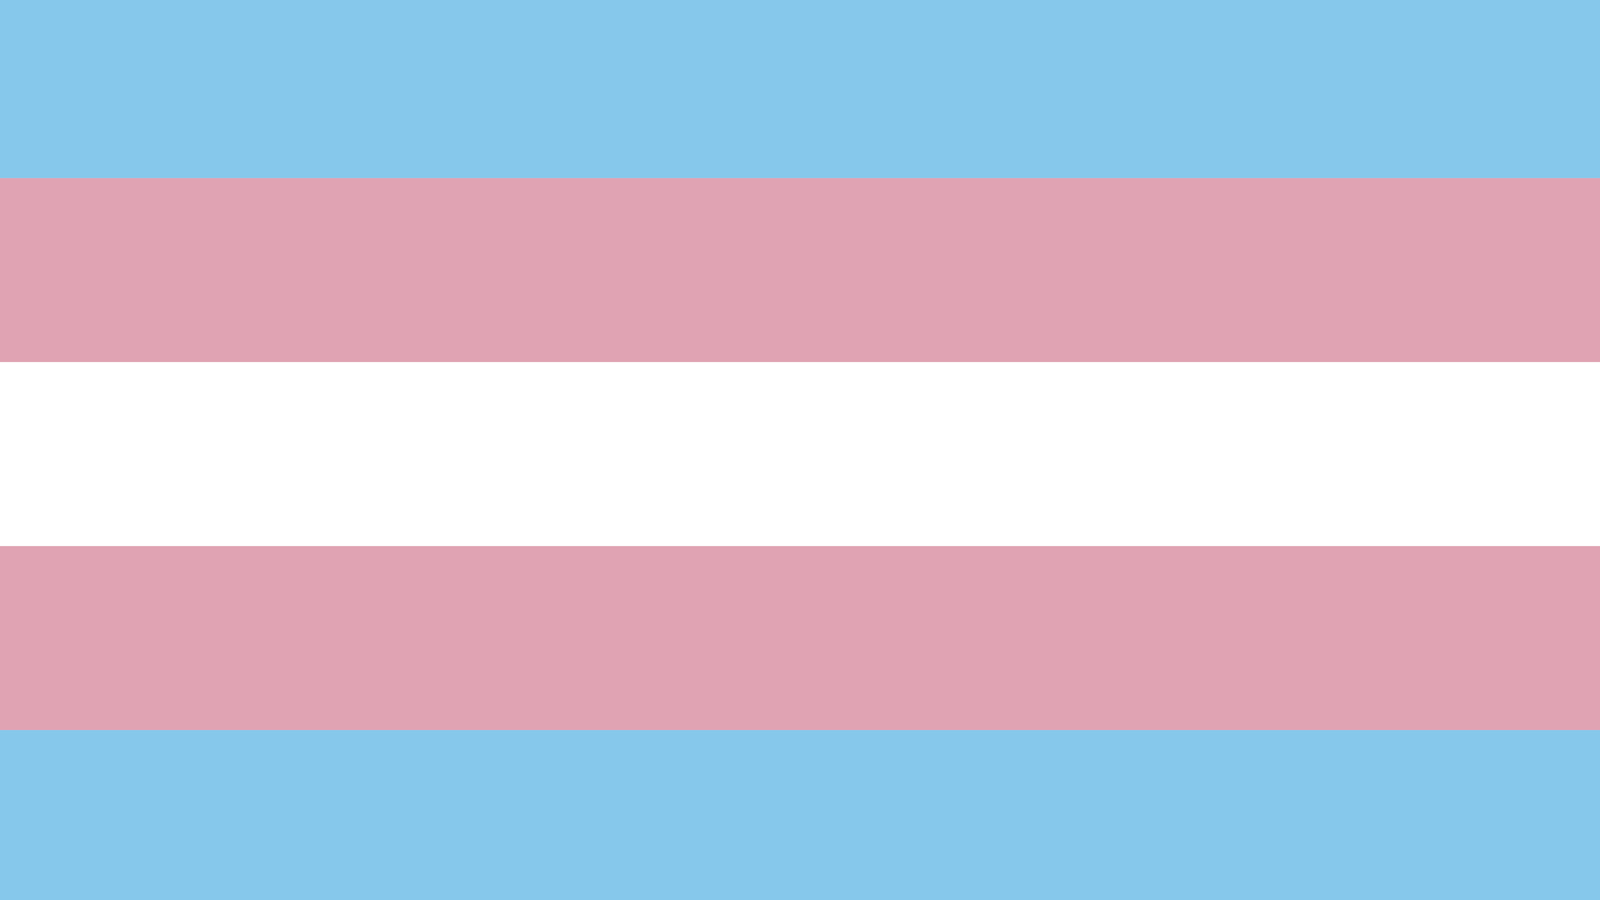 Before Transgender Day of Visibility, Highlighting Trans Survivors of Violence